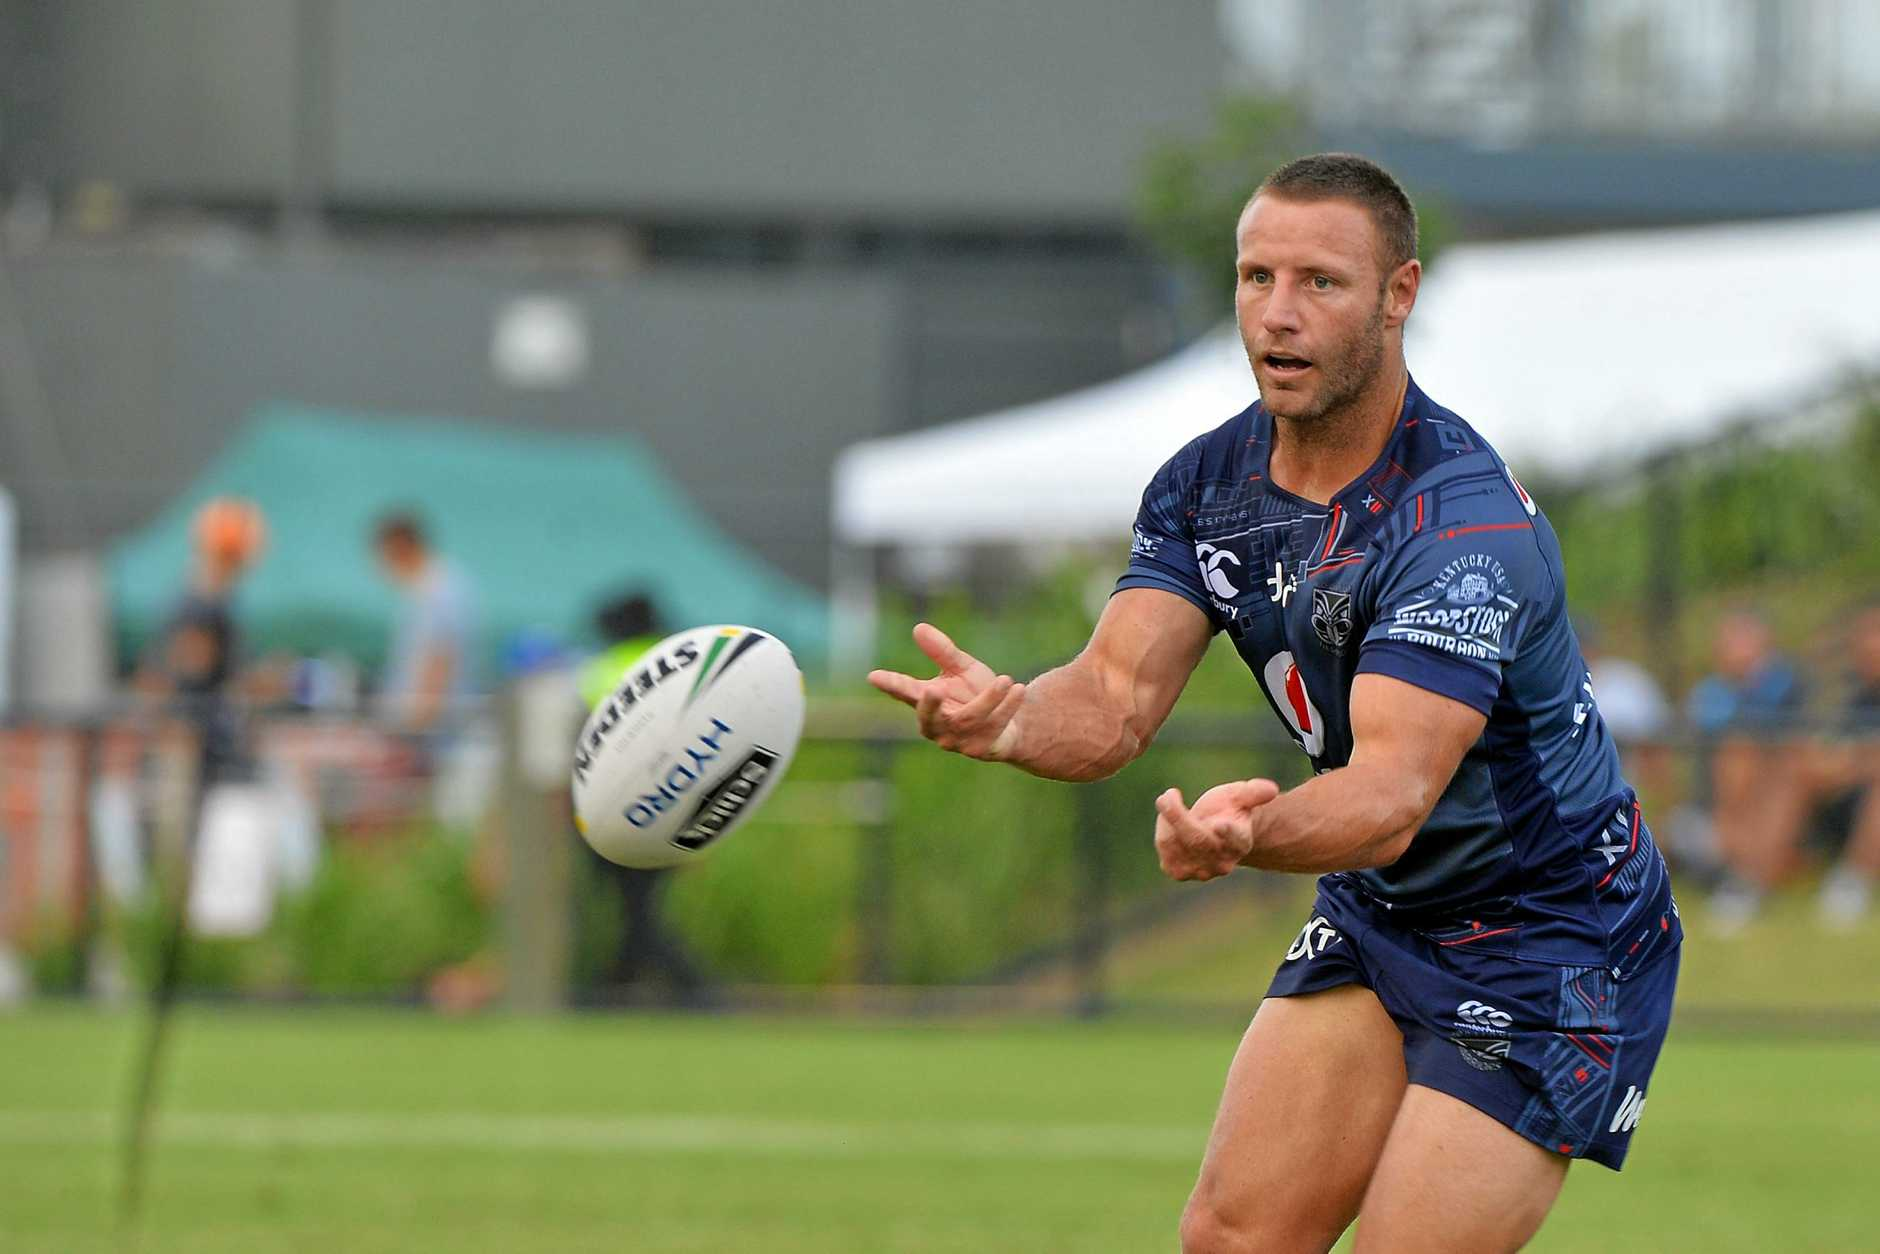 RUGBY LEAGUE: NRL trail. Titans v Warriors. Warrior's Blake Green.